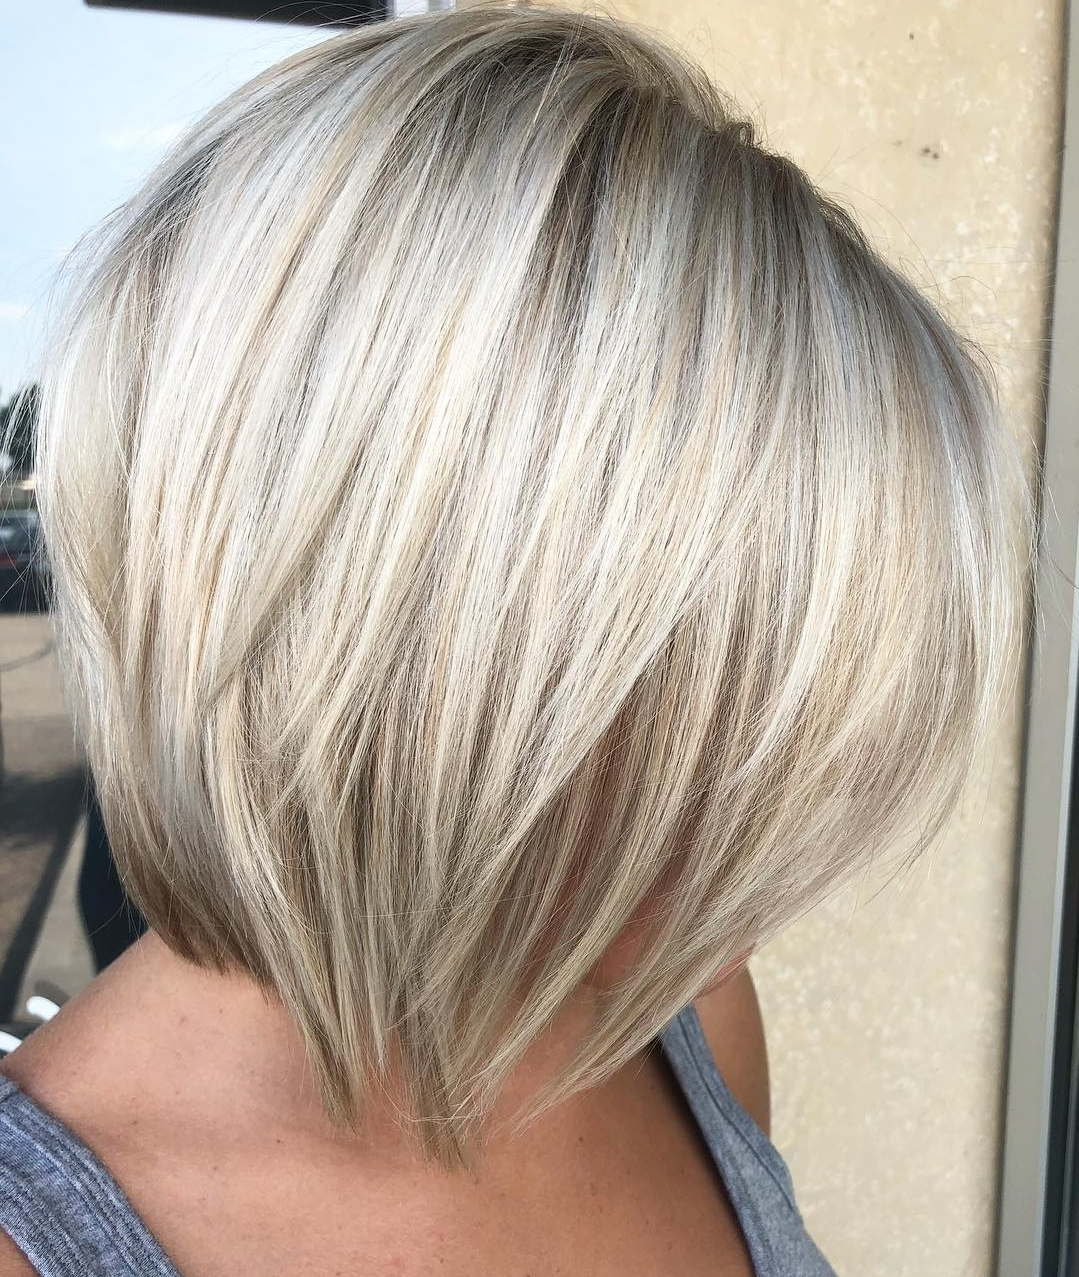 45 Short Hairstyles For Fine Hair To Rock In 2020 For Well Liked One Length Short Blonde Bob Hairstyles (View 7 of 20)